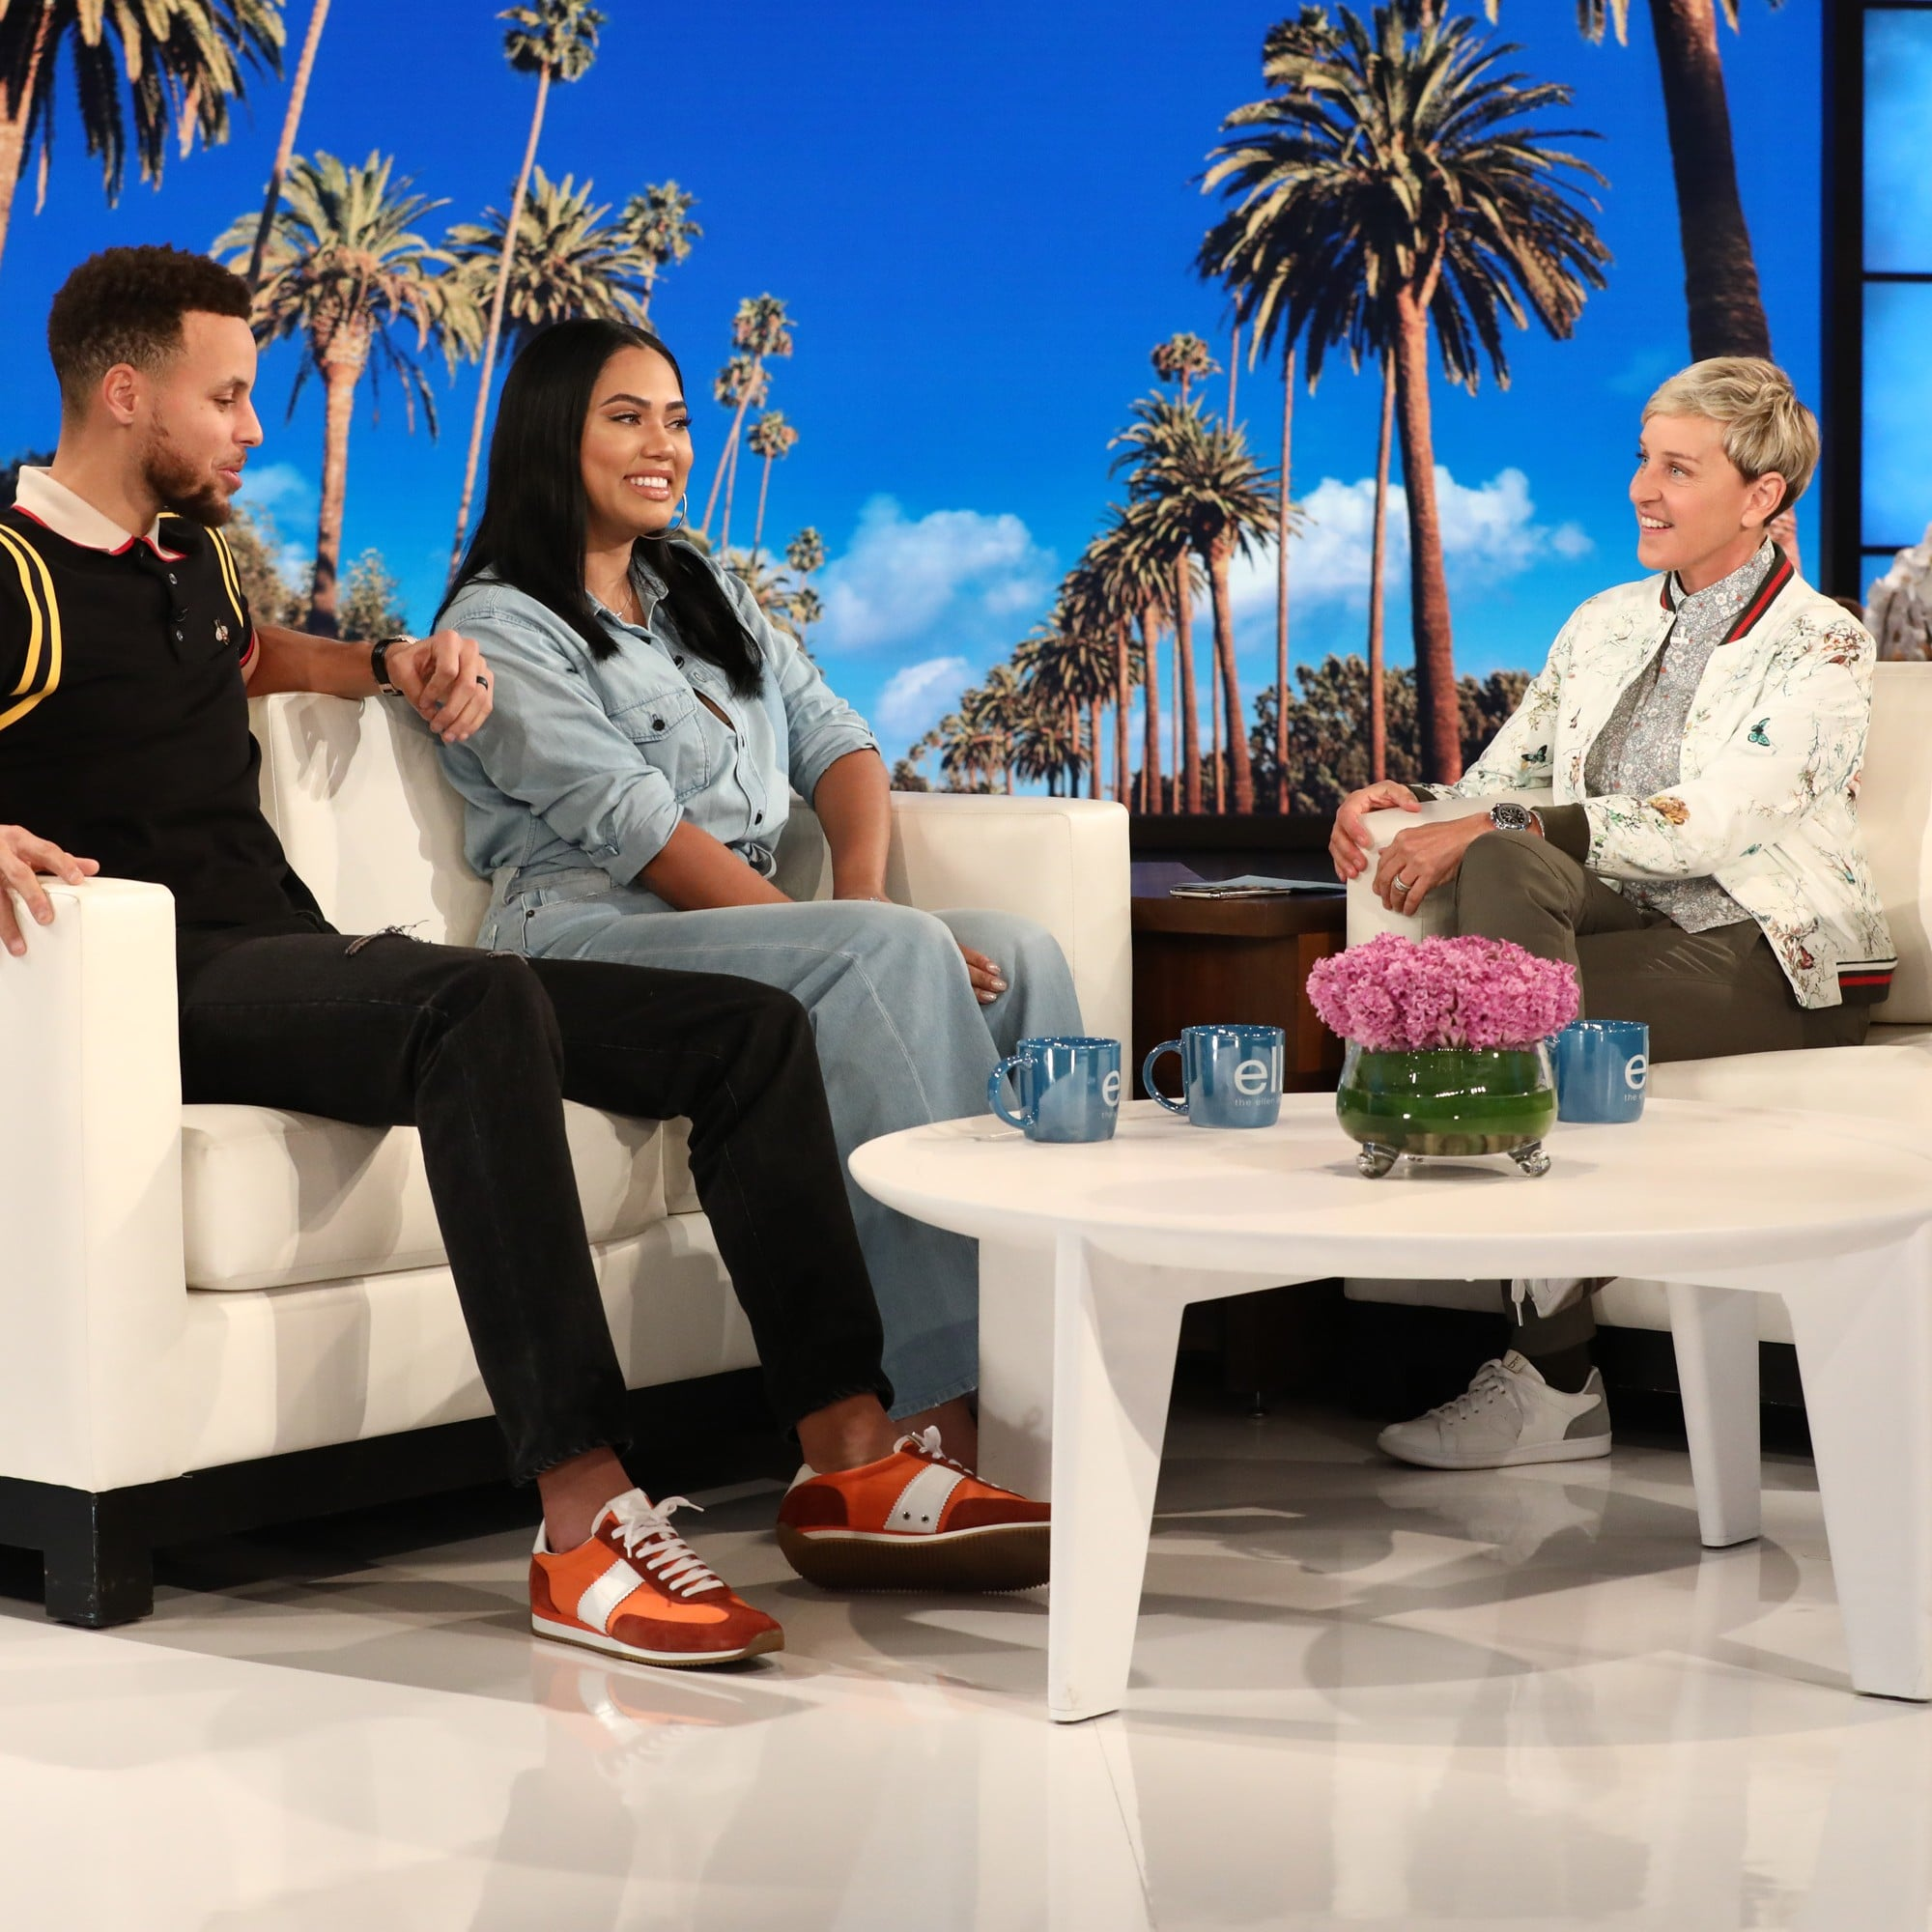 7a9b45408272 Stephen Curry and Ayesha Curry on Ellen Show February 2018